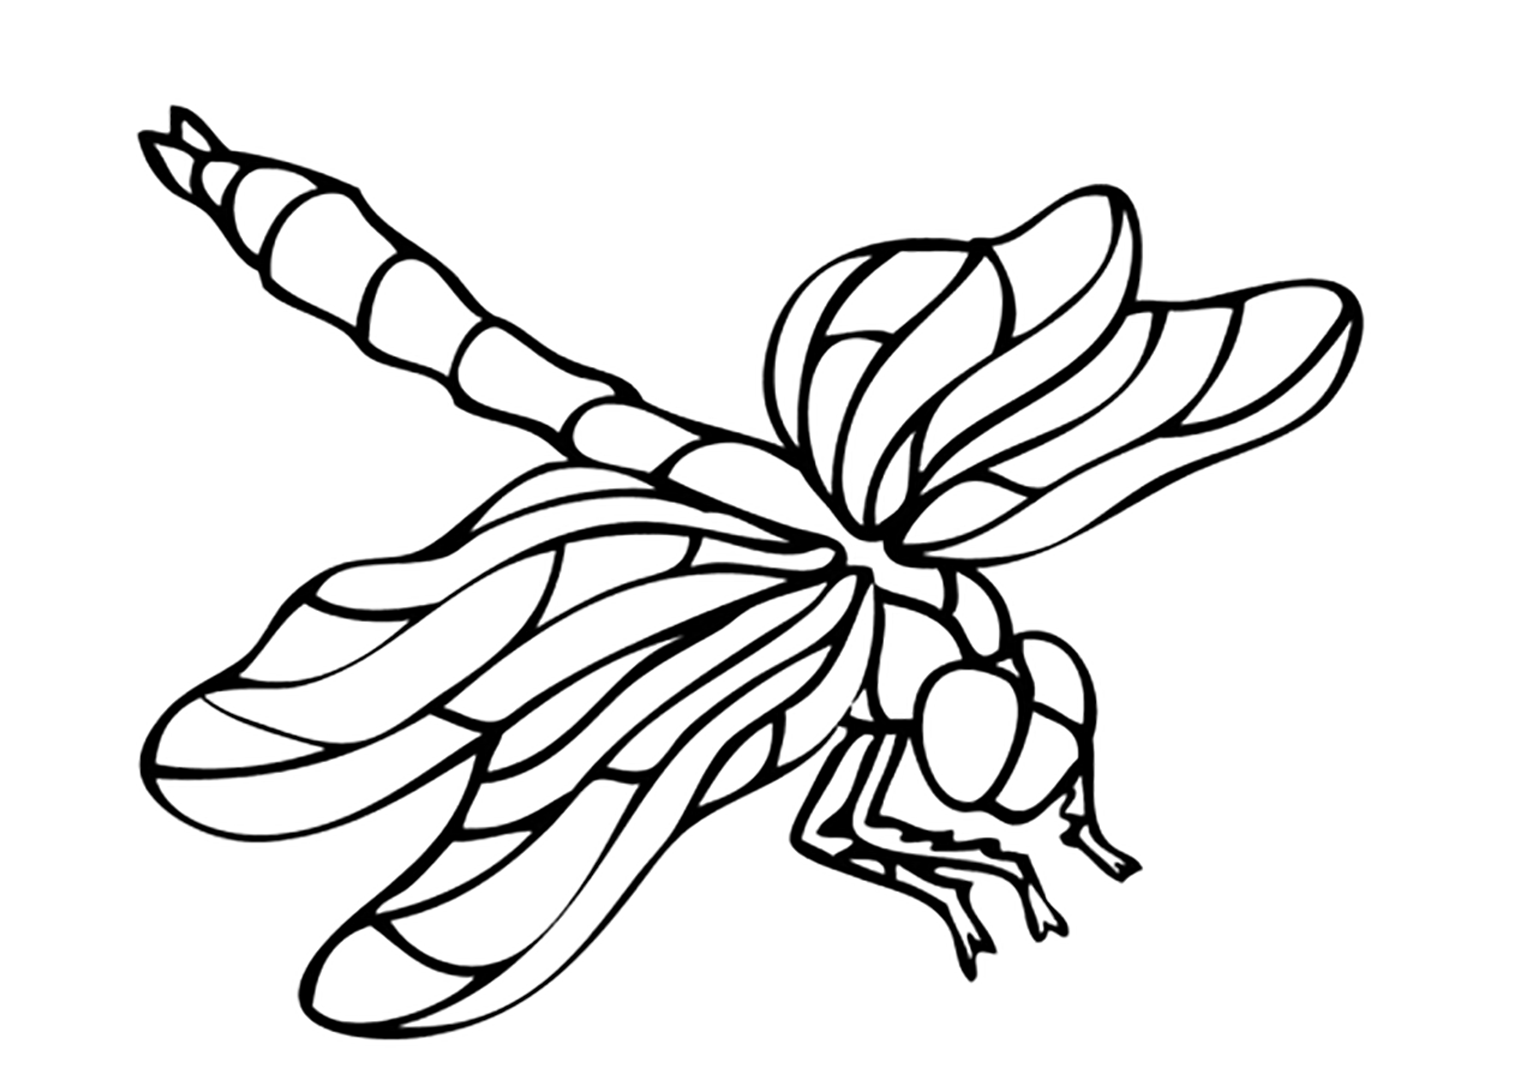 coloring pictures of insects insects for children insects kids coloring pages pictures coloring insects of